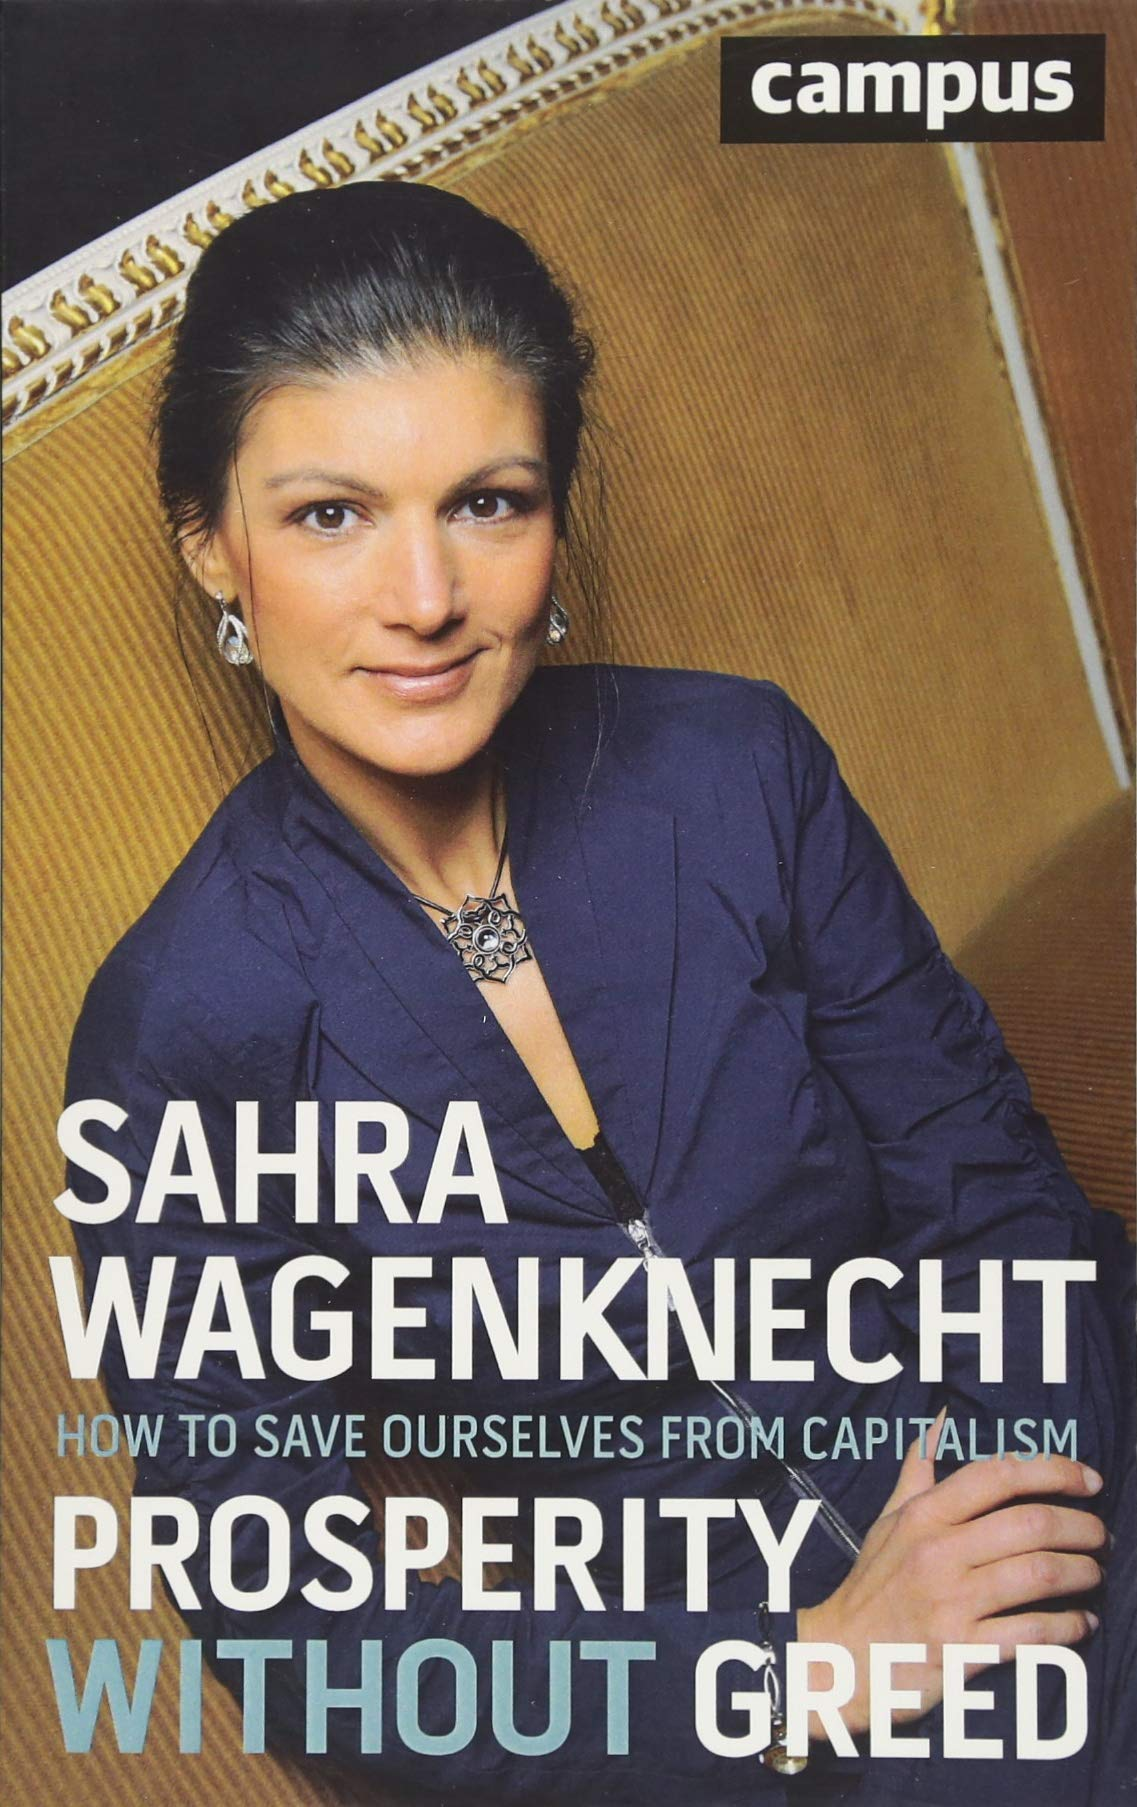 Image result for sahra wagenknecht prosperity without greed english